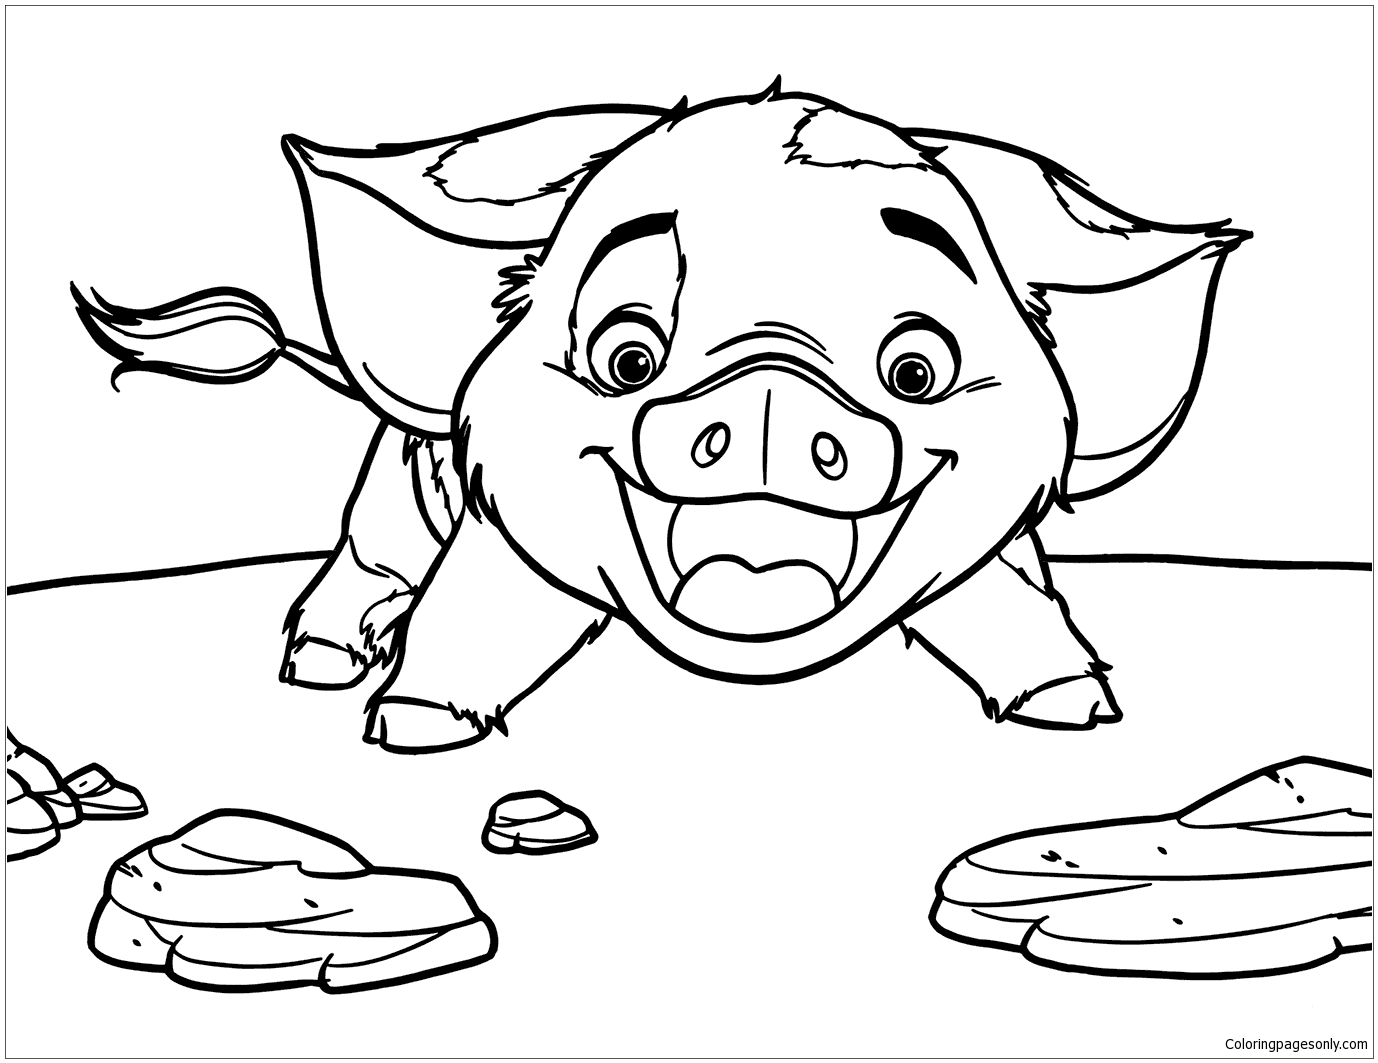 pig from moana coloring page pua pig from moana 6 coloring page free coloring pages moana pig coloring from page